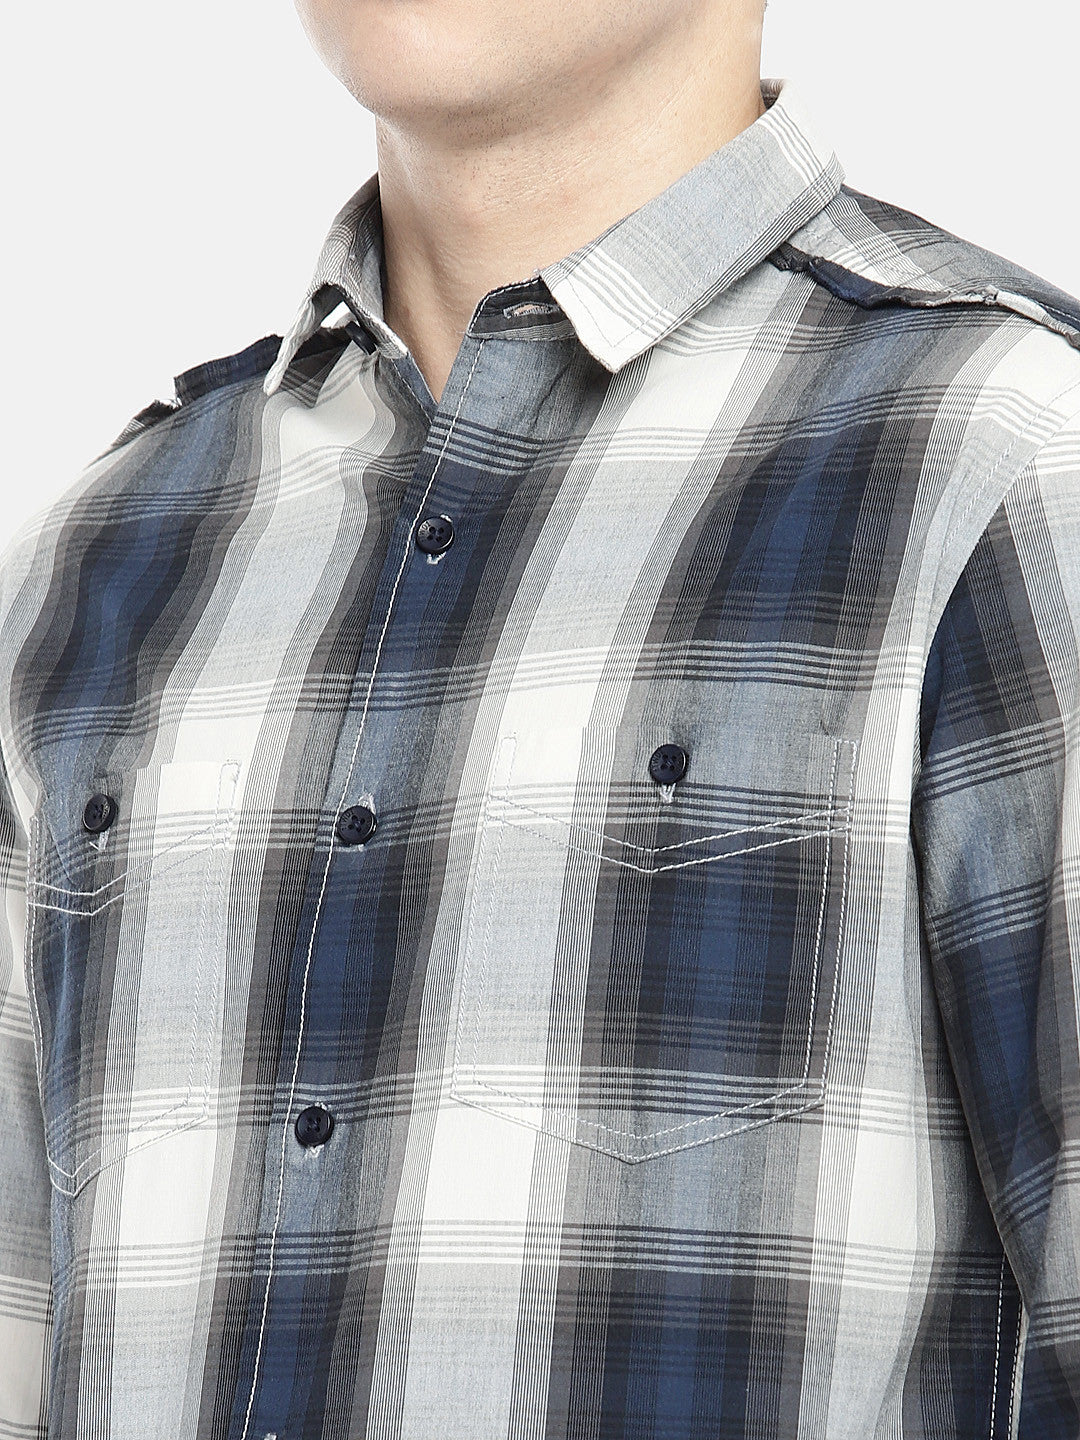 Grey & Navy Blue Regular Fit Checked Casual Shirt-5